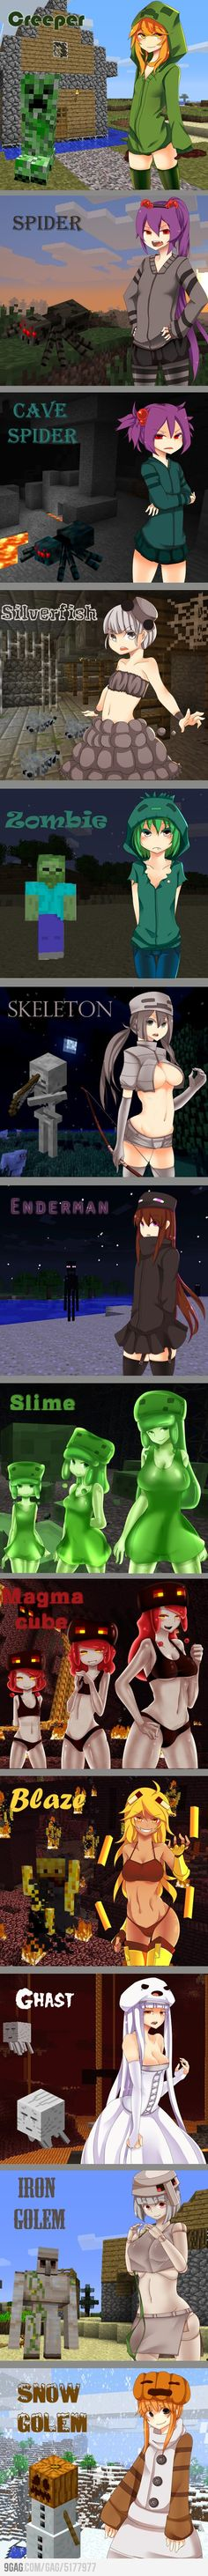 Minecraft monsters into anime girls. I'd be like an enderman. :p